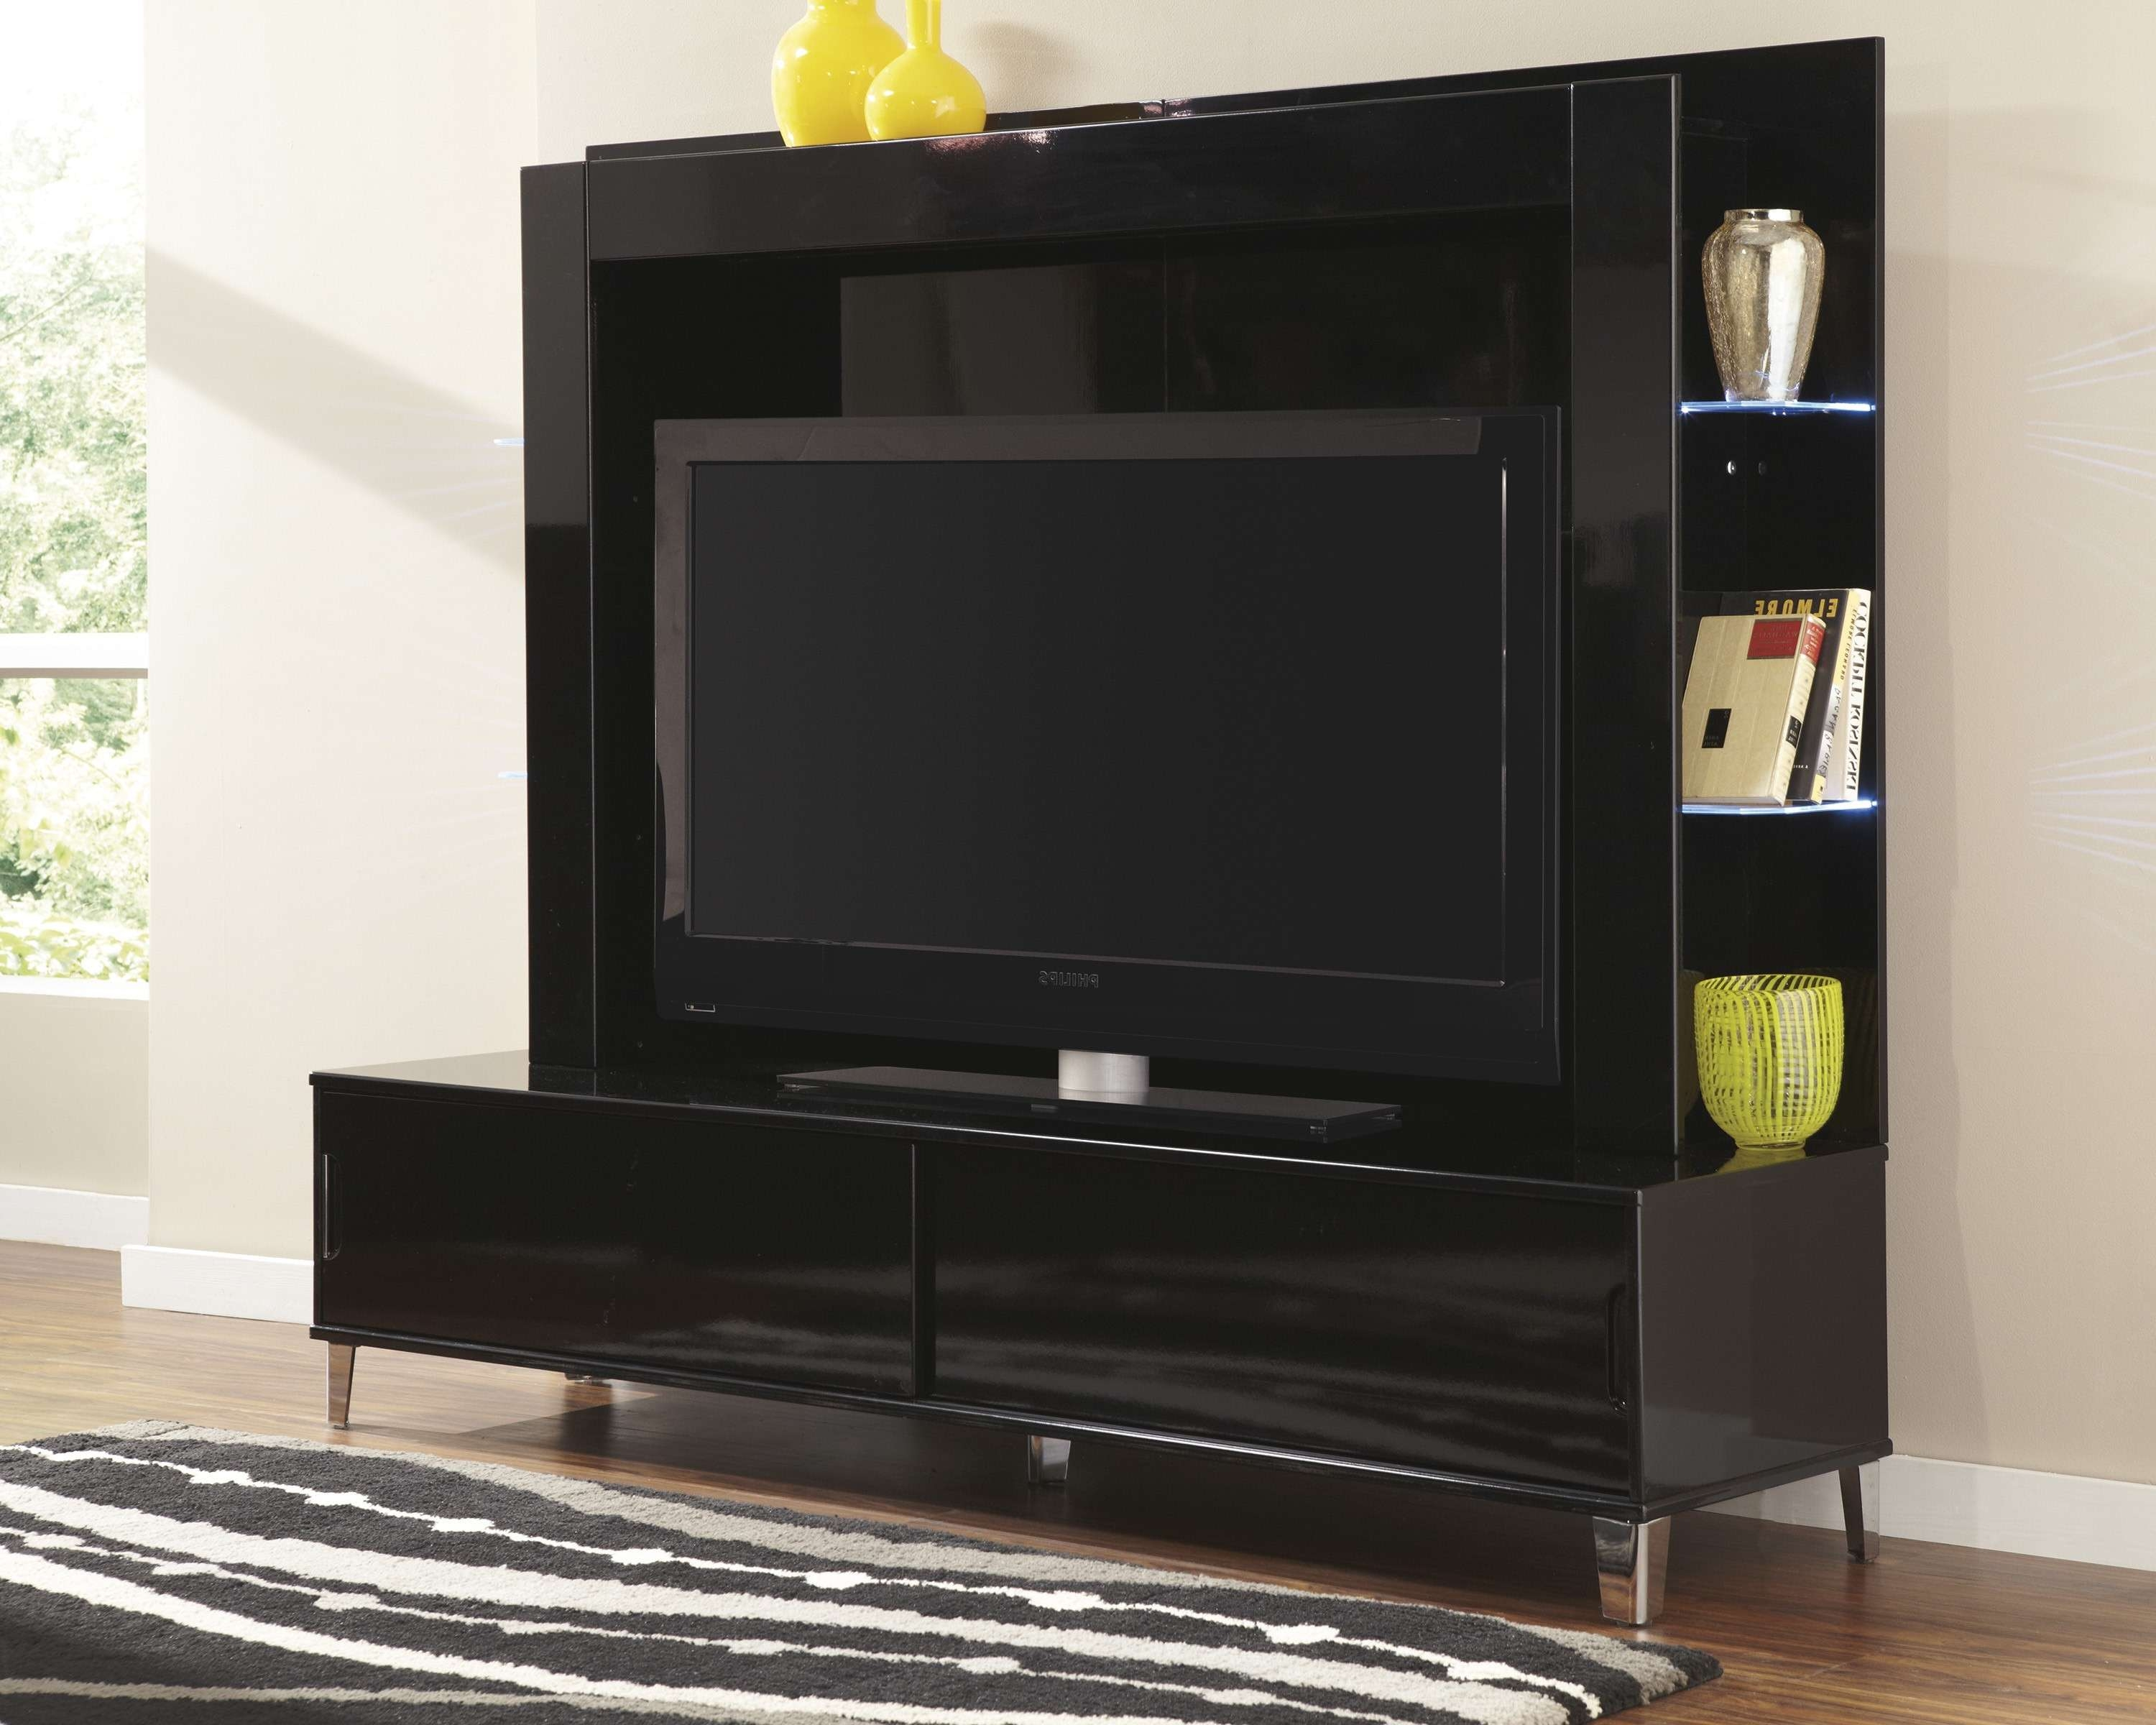 Bedrooms : Fascinating Flat Screen Tv Mount Stand Cream Wall Within Black Wood Corner Tv Stands (View 14 of 15)